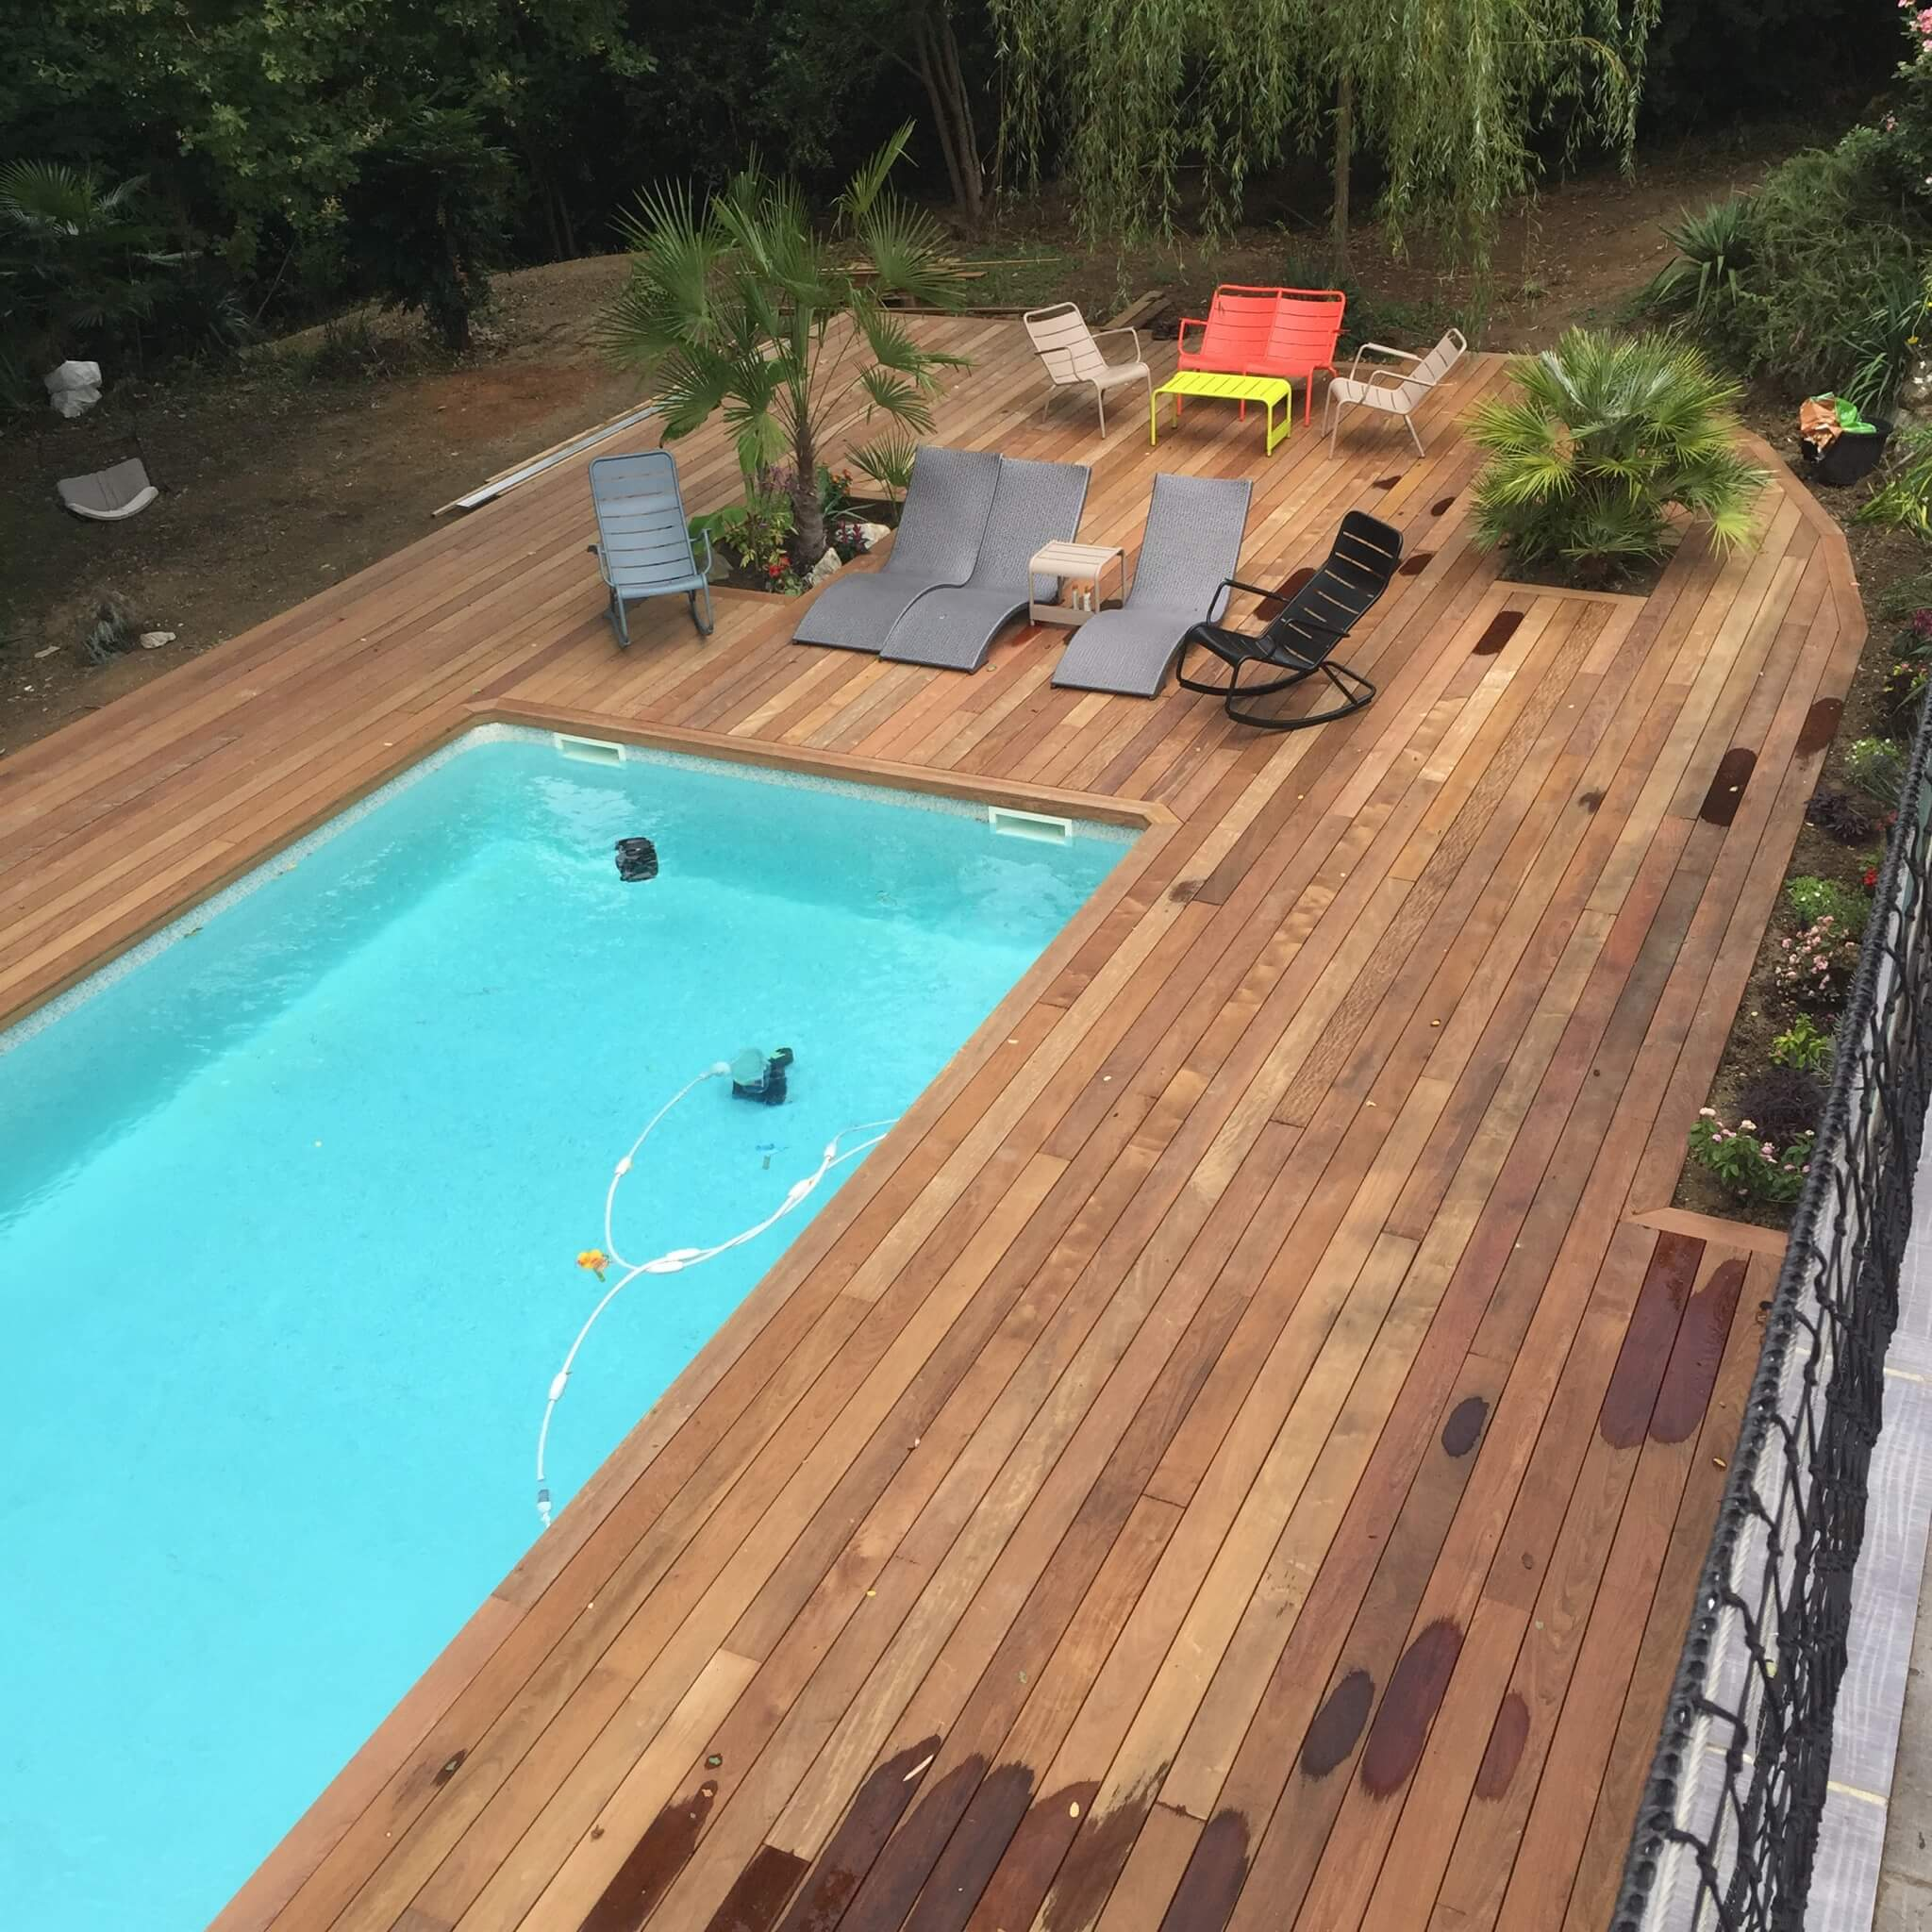 Terrasse bois piscine construction 4 c2z entreprise for Construction piscine bois